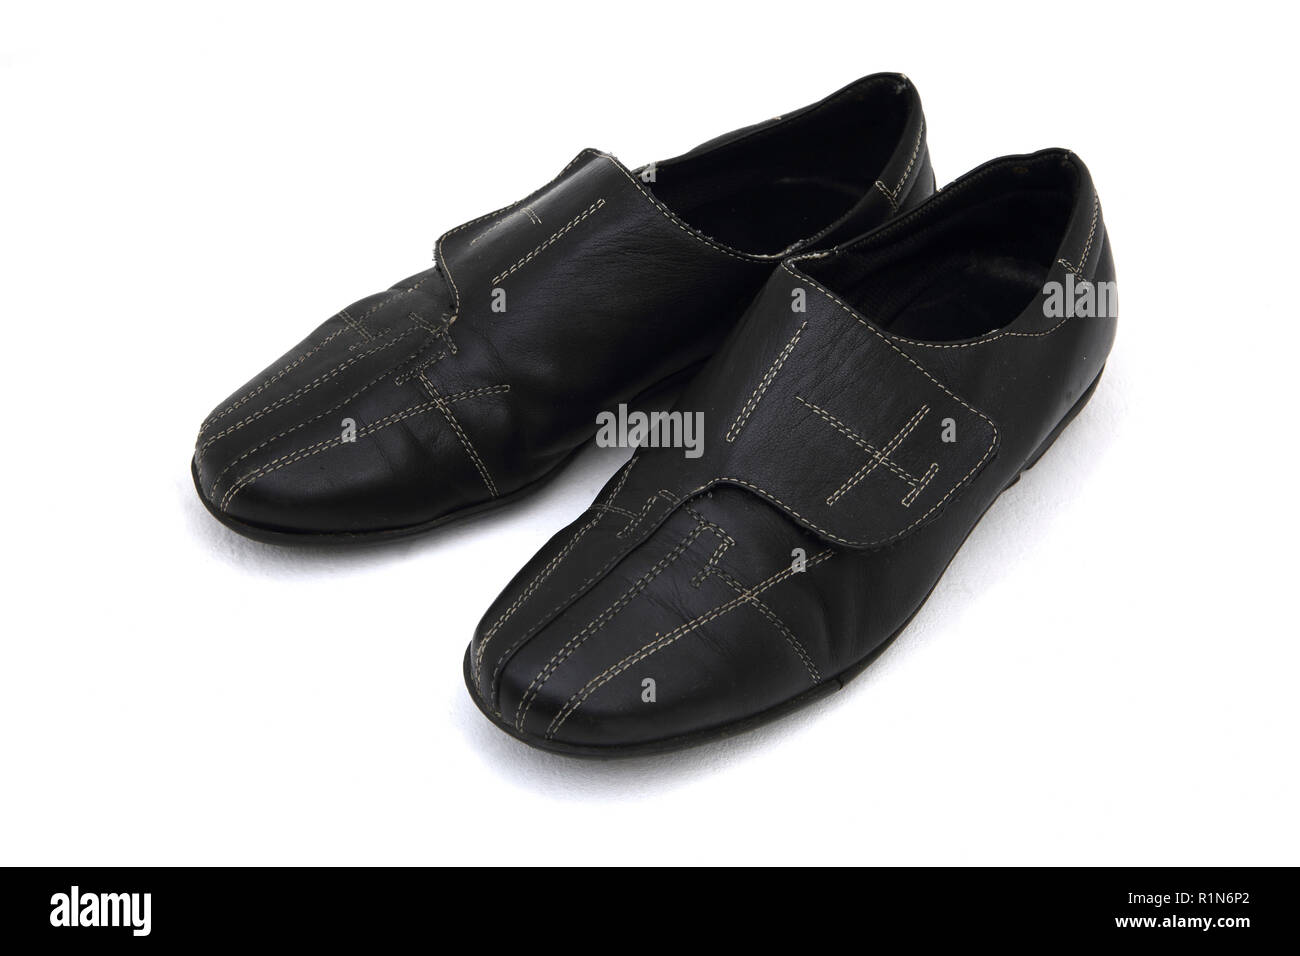 Flat Leather Shoes with Velcro Fastener - Stock Image